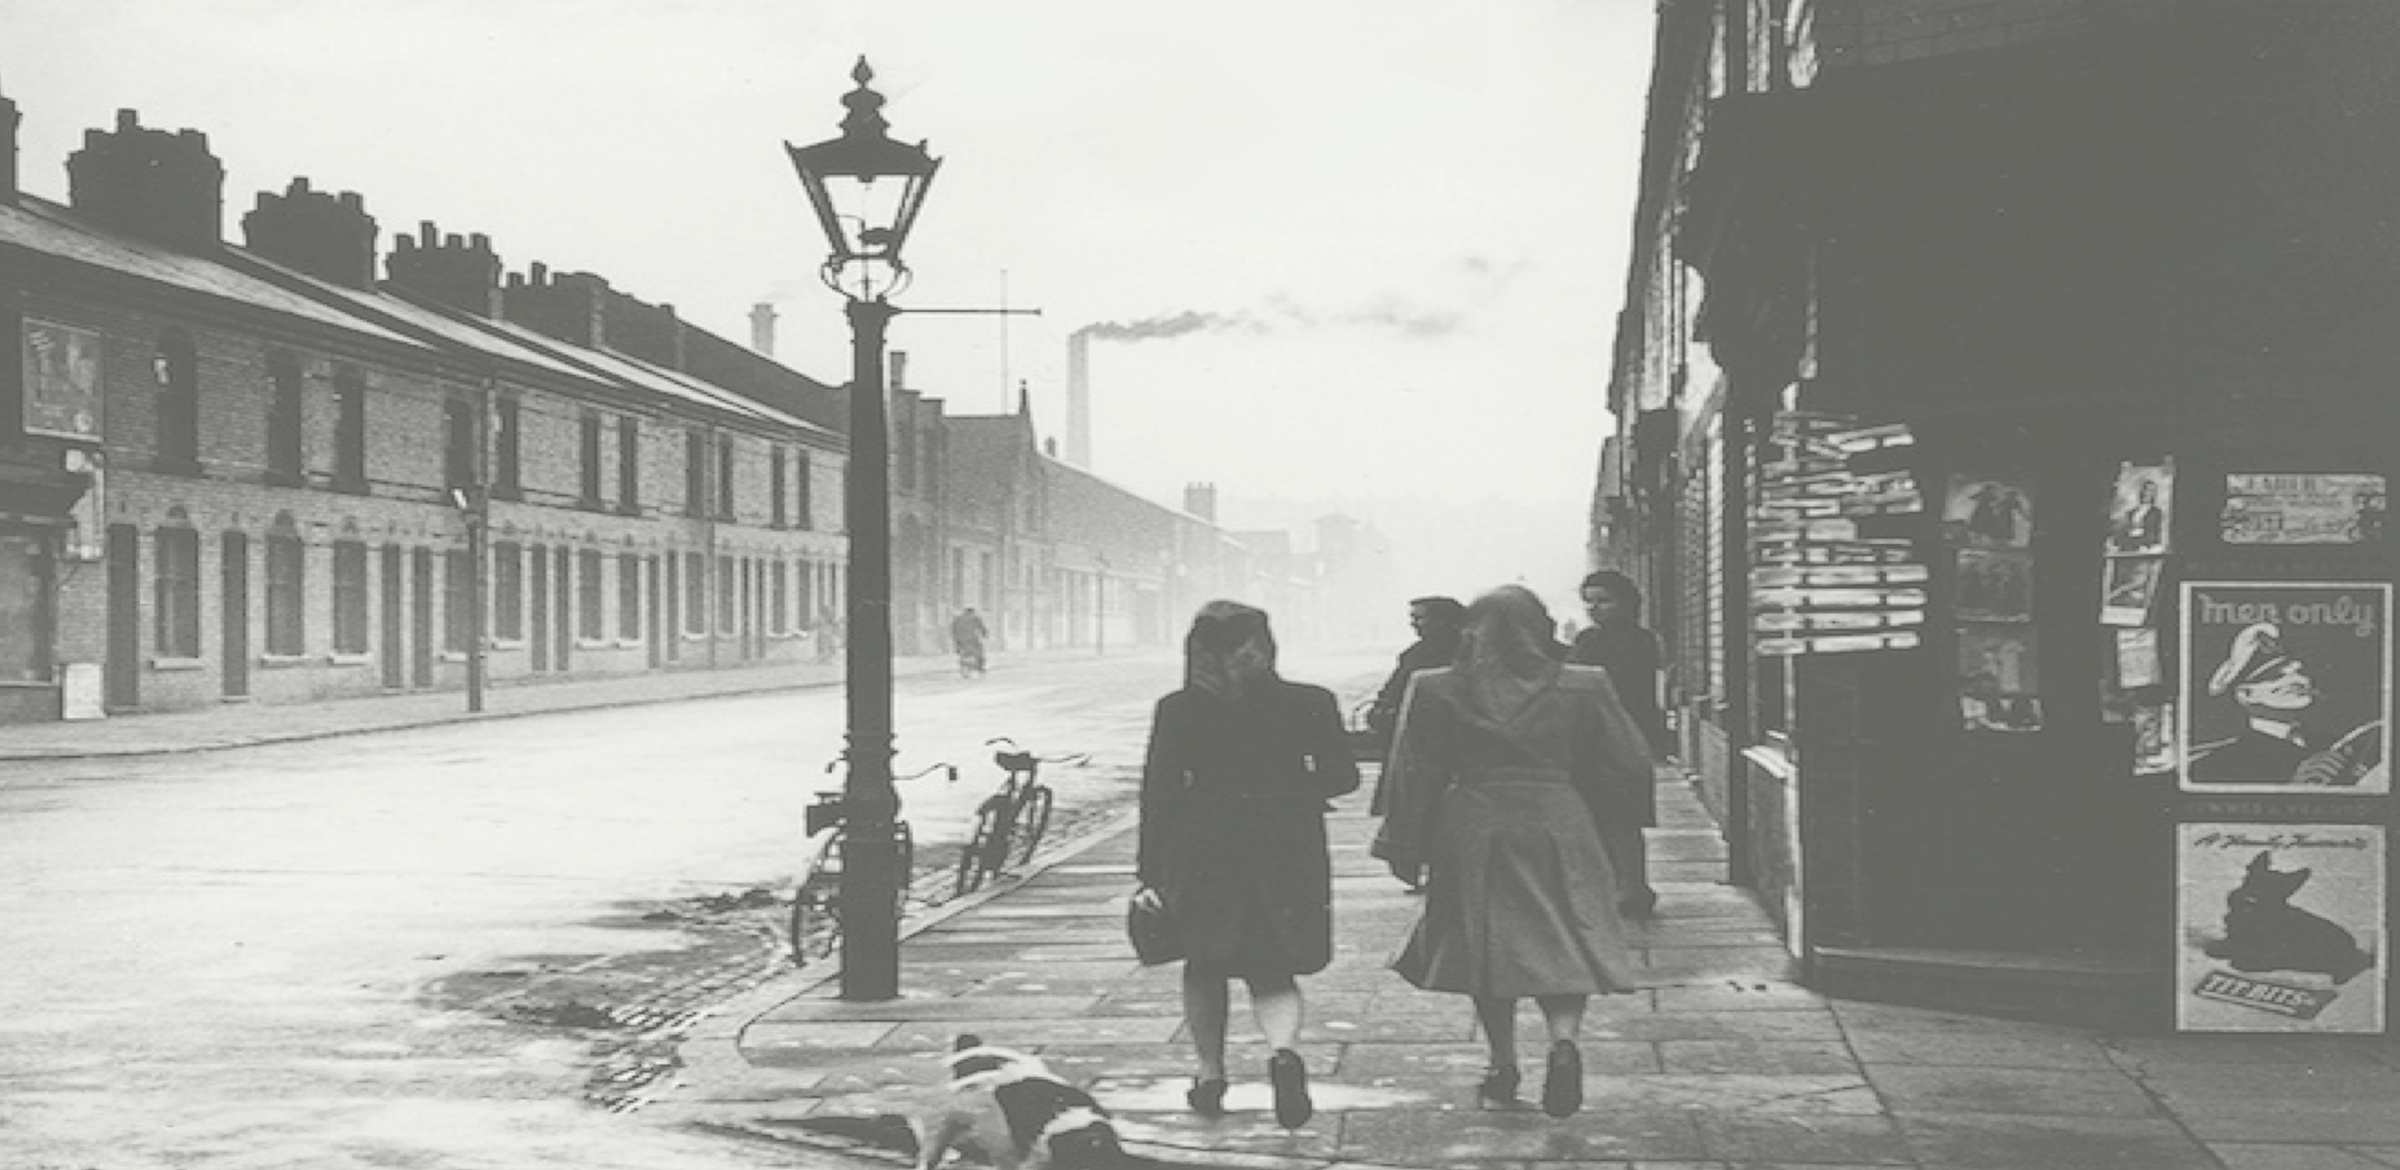 "Lynda Nead of the University of London will speak April 14 on ""The Tiger in the Smoke: The Aesthetics of Fog in Post-War Britain c. 1945-55"" as part of a series of Earth Month events at Wesleyan."